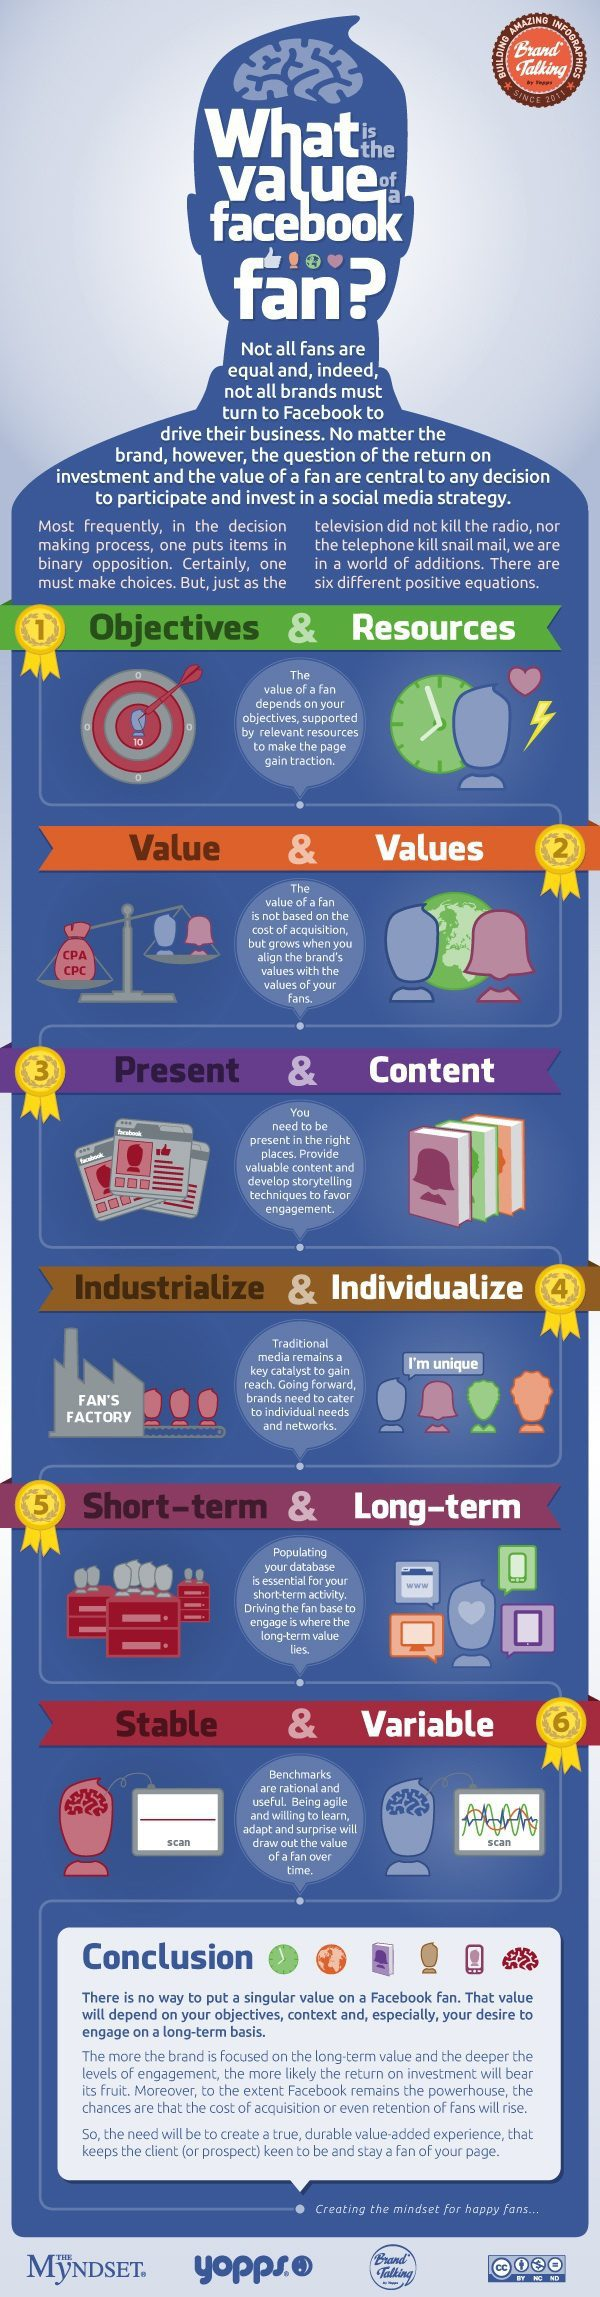 What is the value of a Facebook fan? by @yopps & @mdial on Twitter